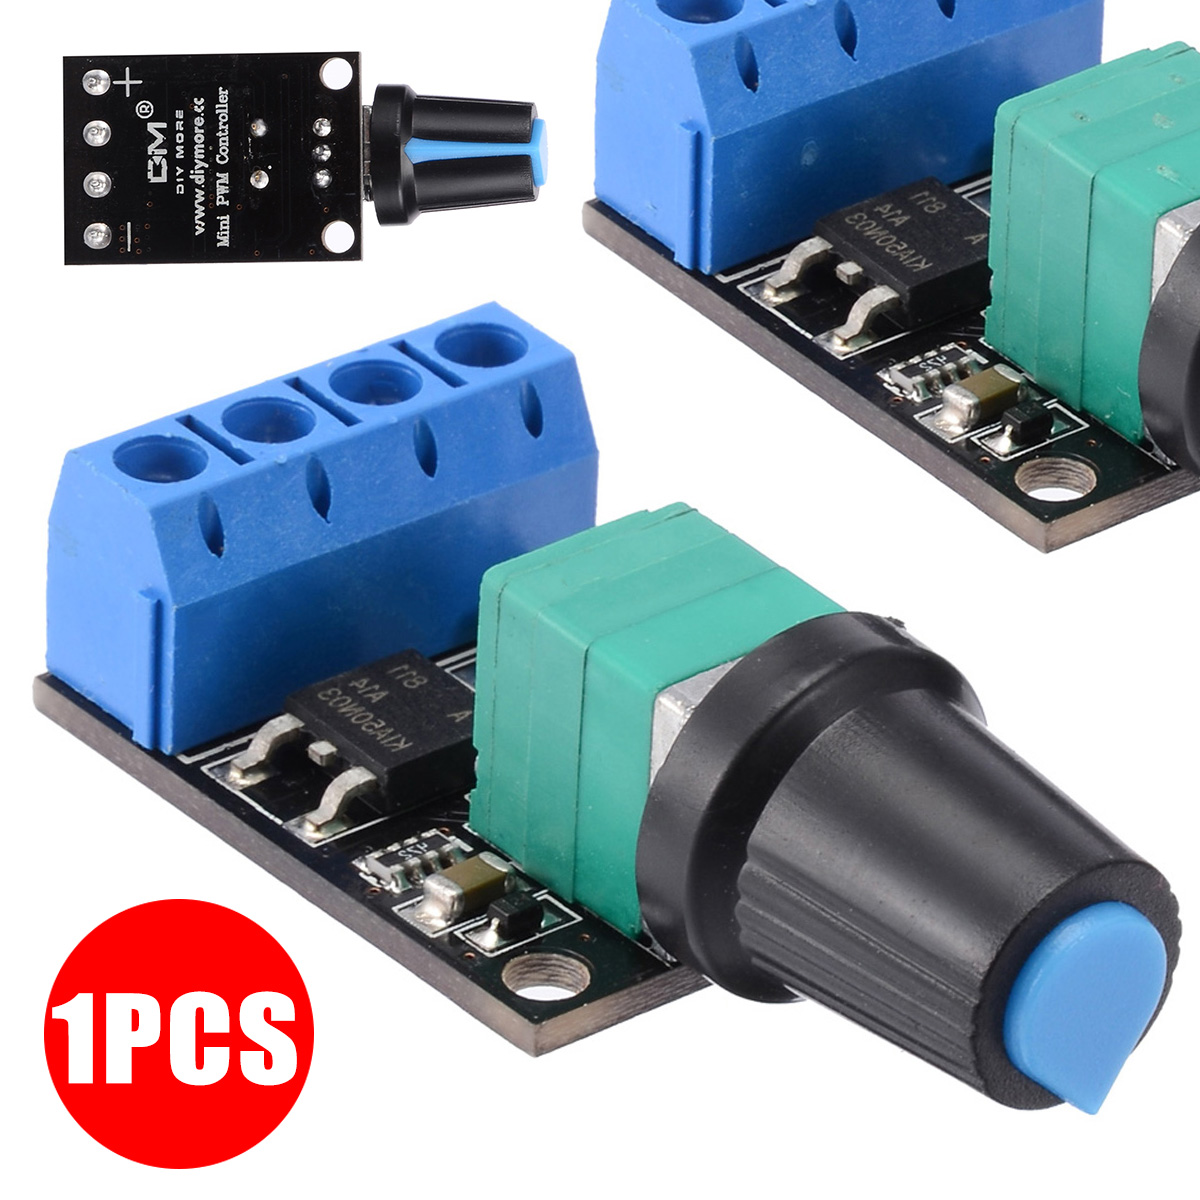 DC 5V-16V PWM DC Speed Controller 10A DC Motor Speed Controlling Switch LED Dimmer Controller Mayitr